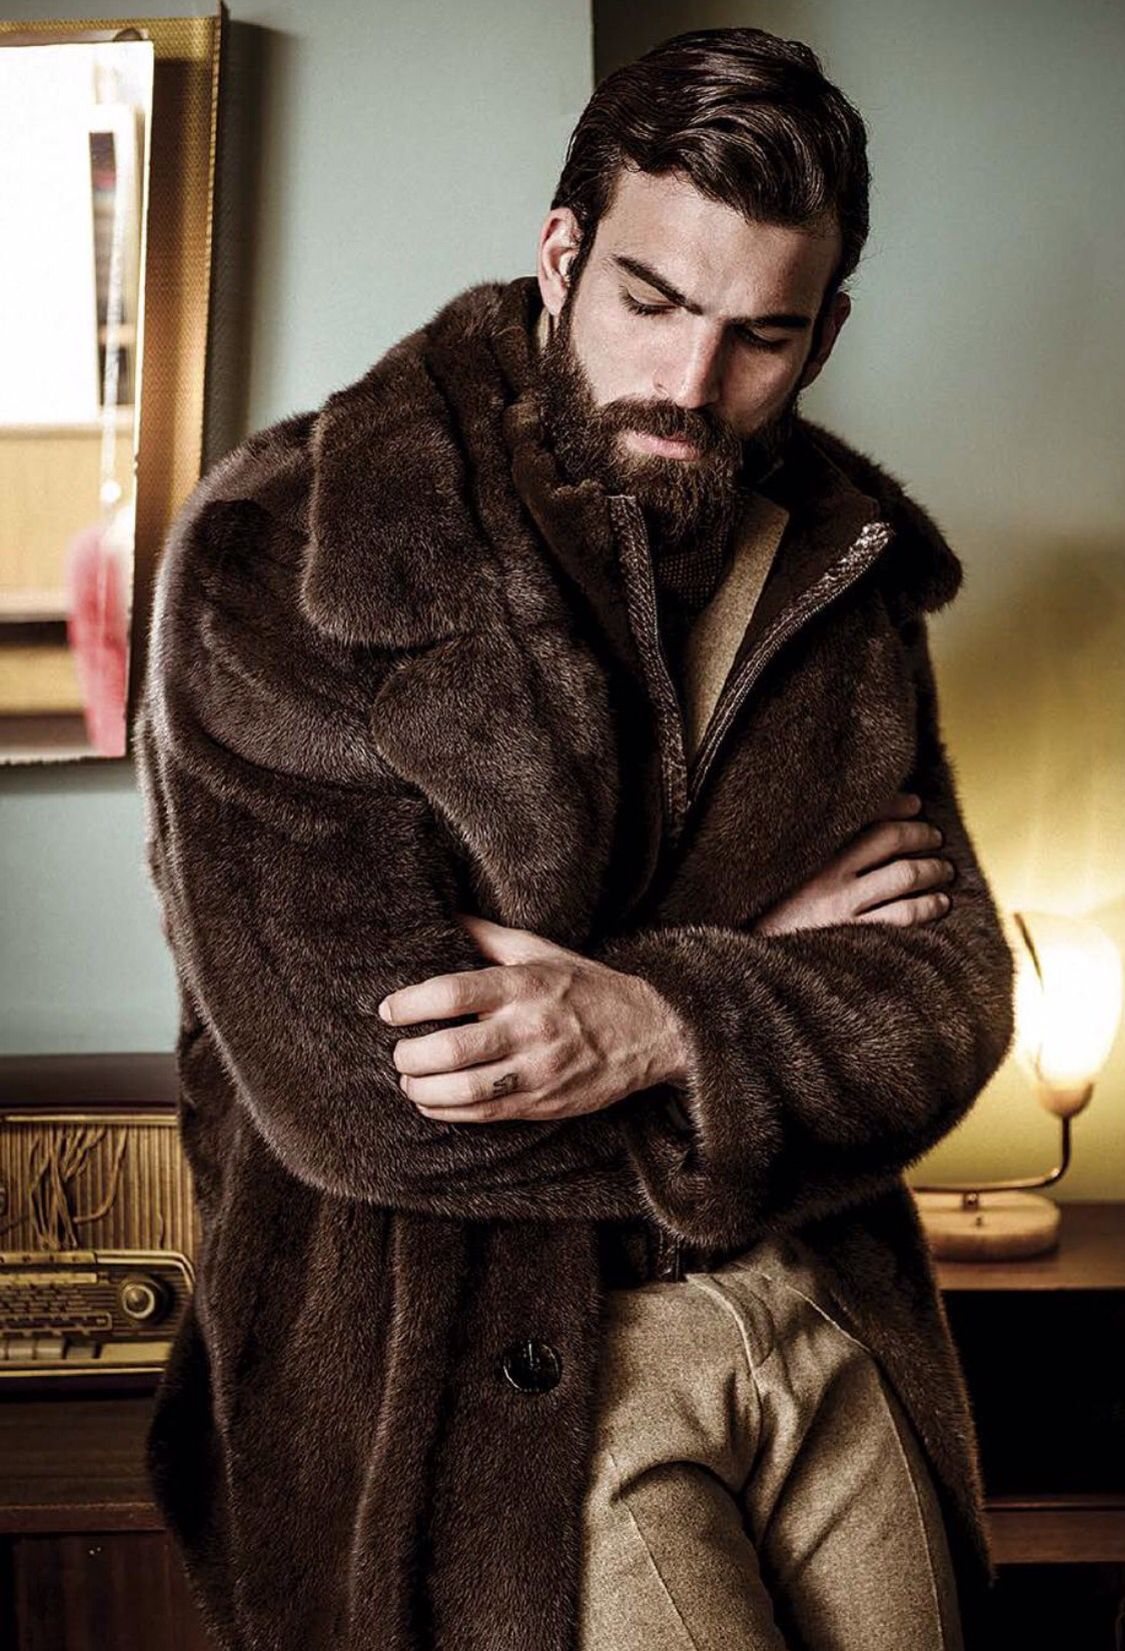 Mens jacket lined with fur - Find This Pin And More On Men In Fur Fur Coat With Fur Lining